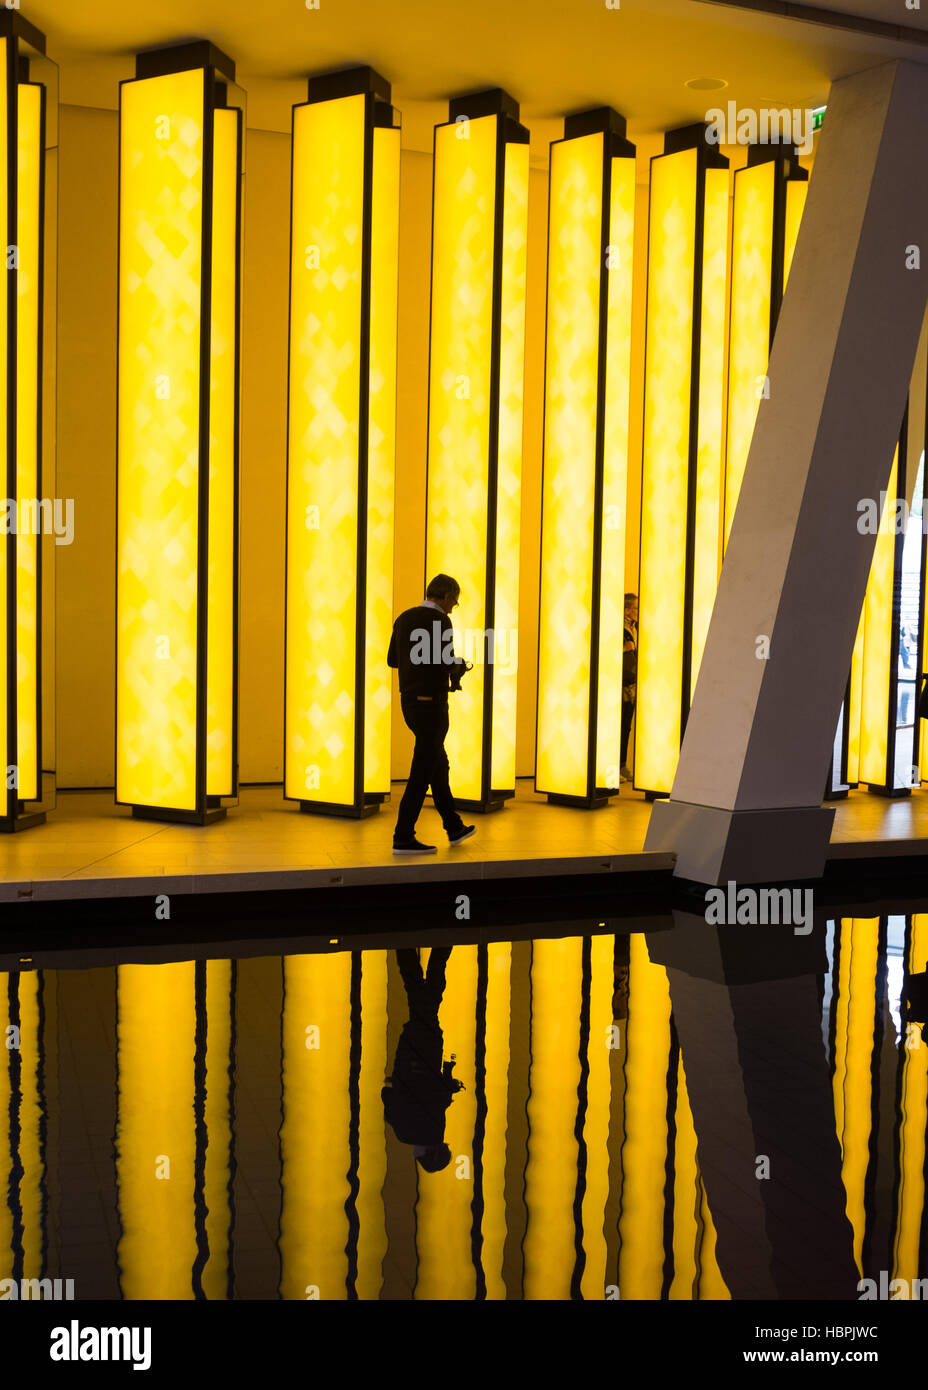 "Olafur Eliasson, artwork ""Inside the Horizon"" at Louis Vuitton Foundation, Louis Vuitton Fondation,Paris,France. Stock Photo"